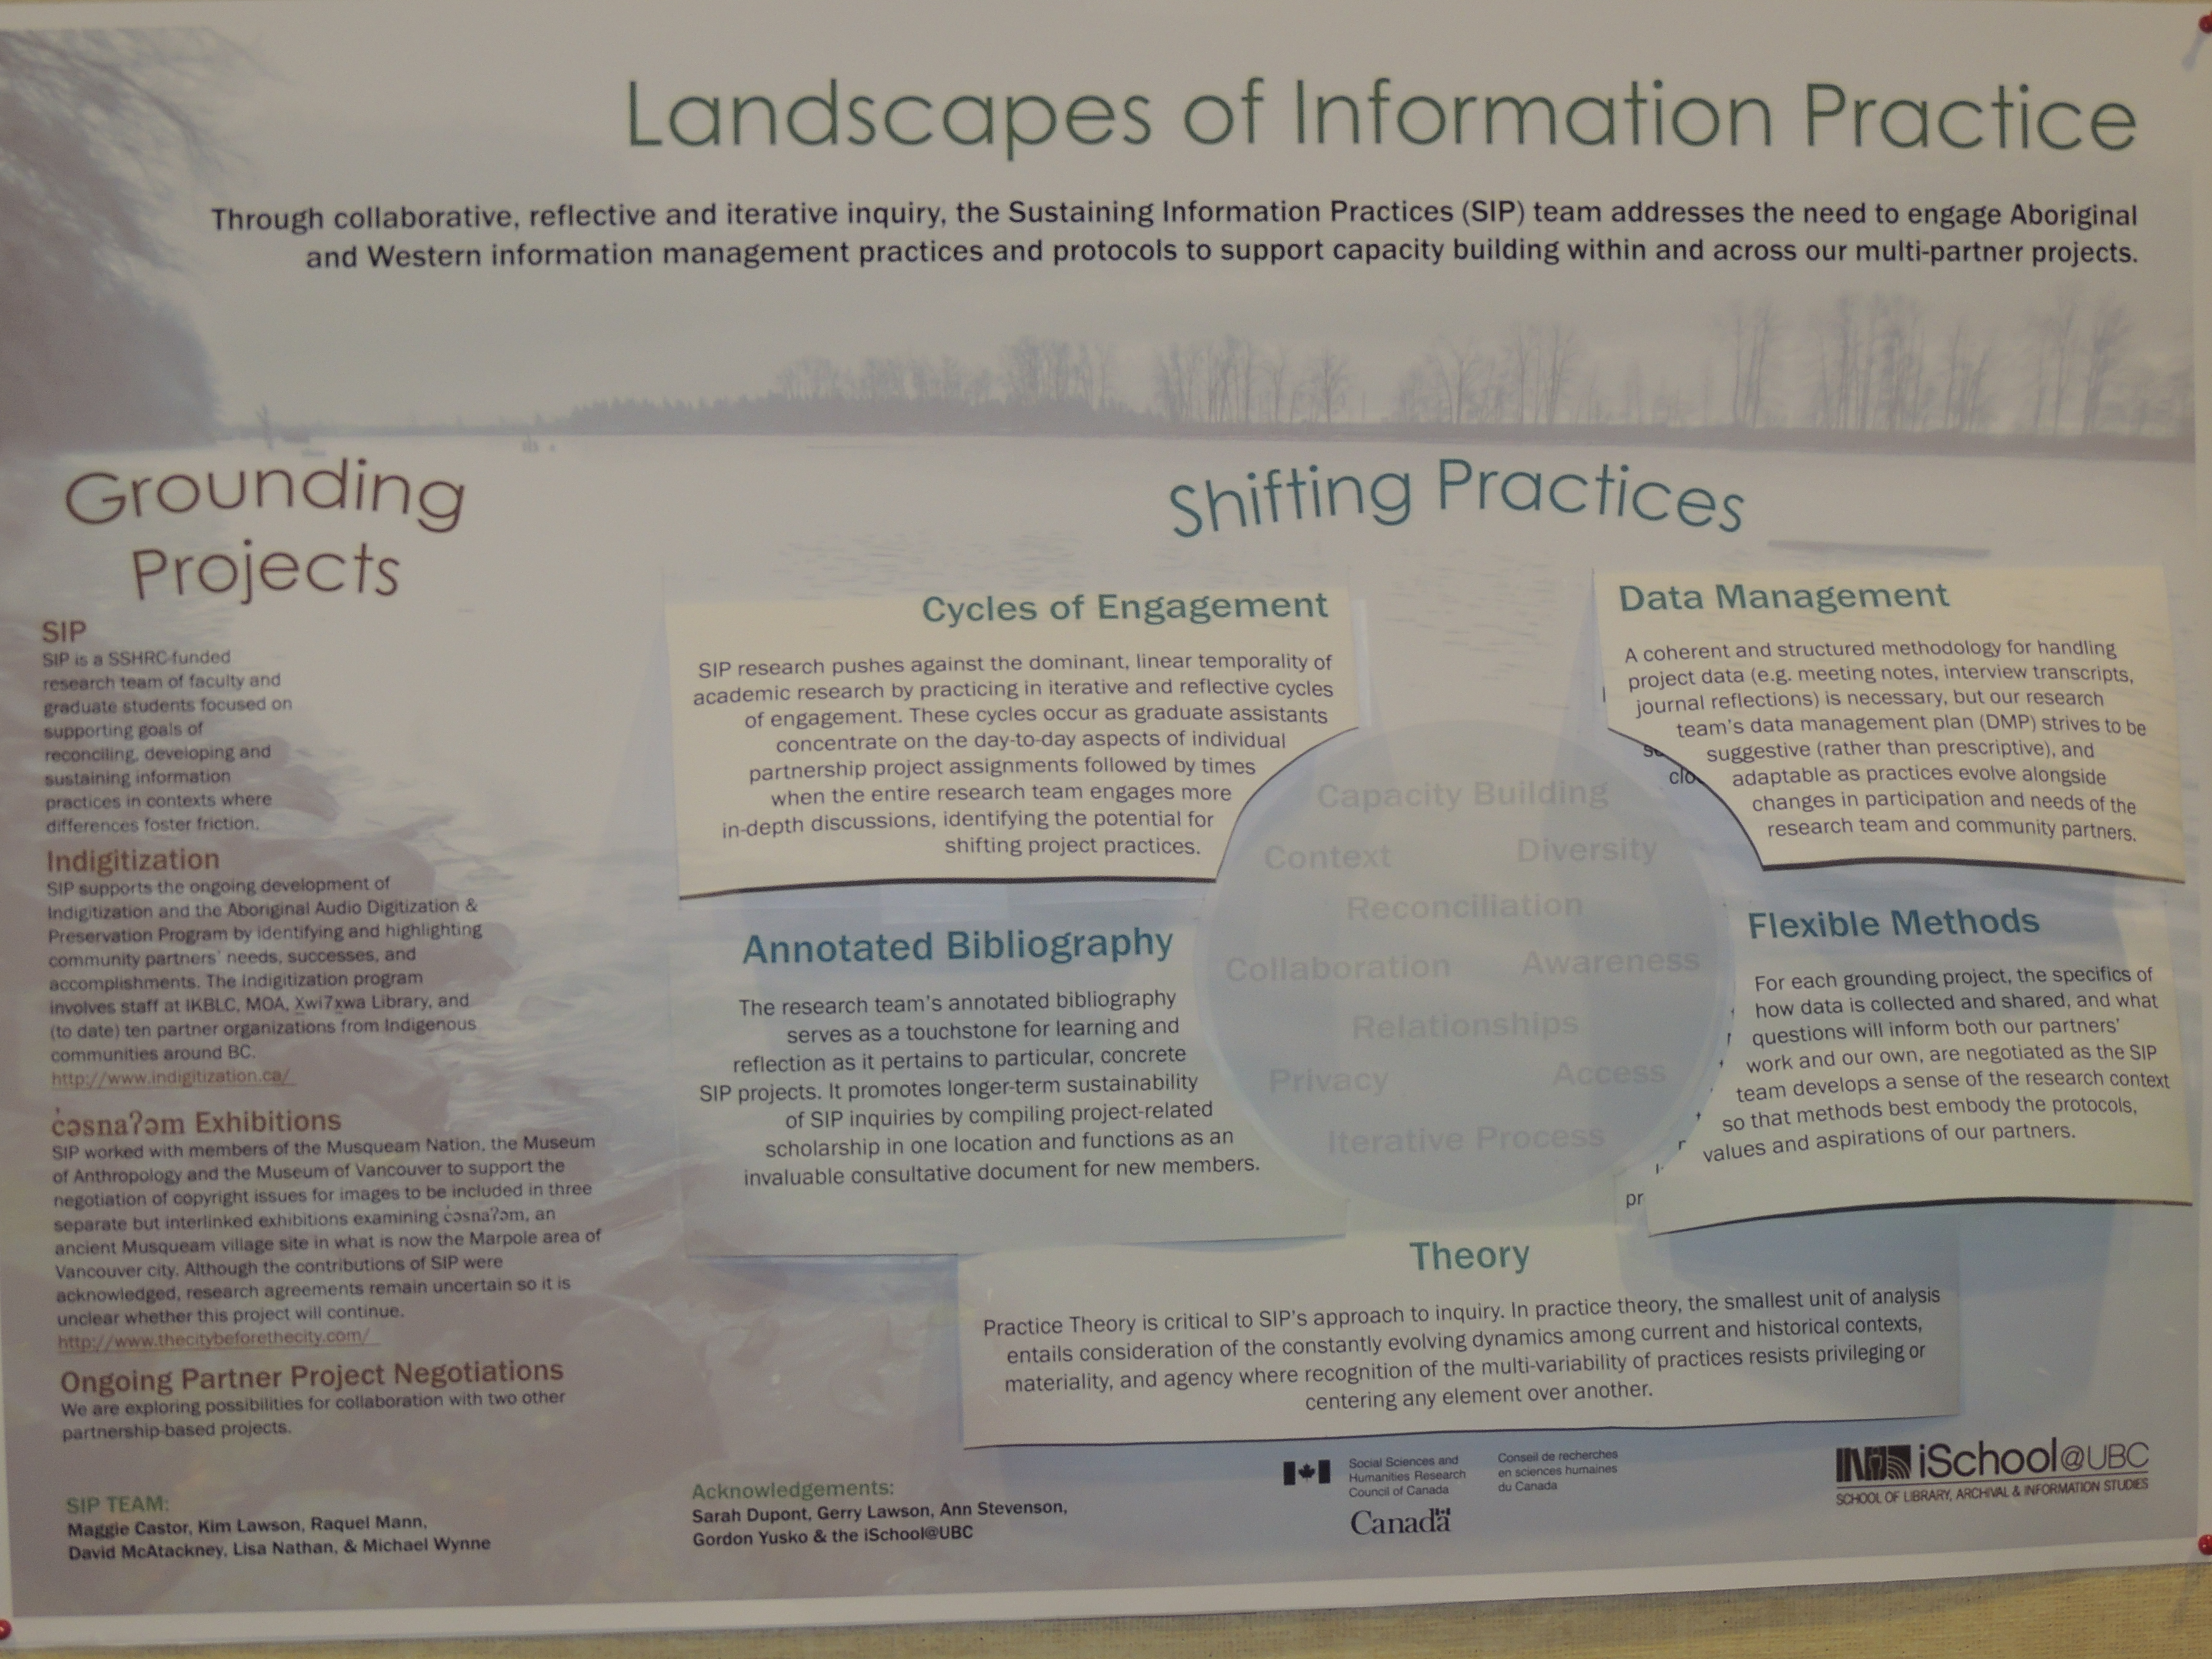 Research day 2015 information responsibilities ubc ischool landscapes of information practice maggie castor kim lawson rocky mann david mcatackney 1betcityfo Choice Image